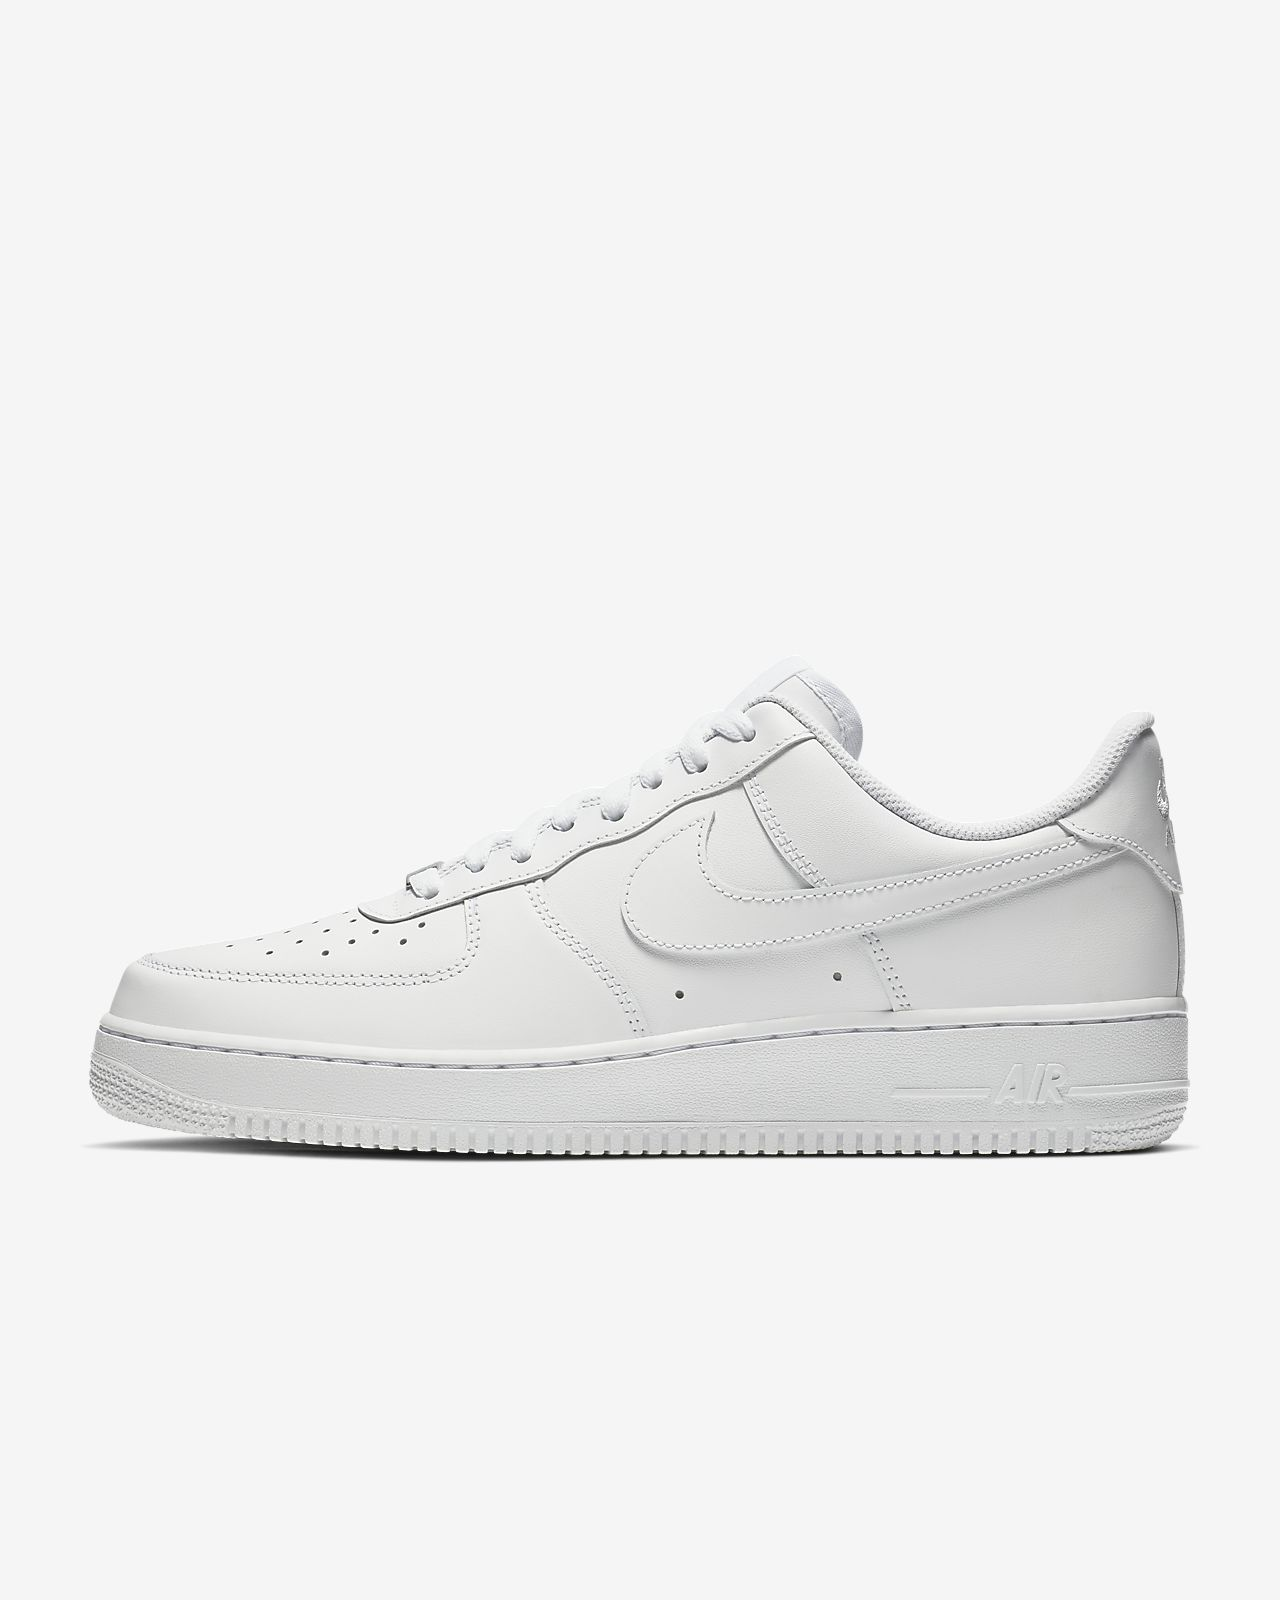 Nike Air Force 1 '07 Men's Shoe